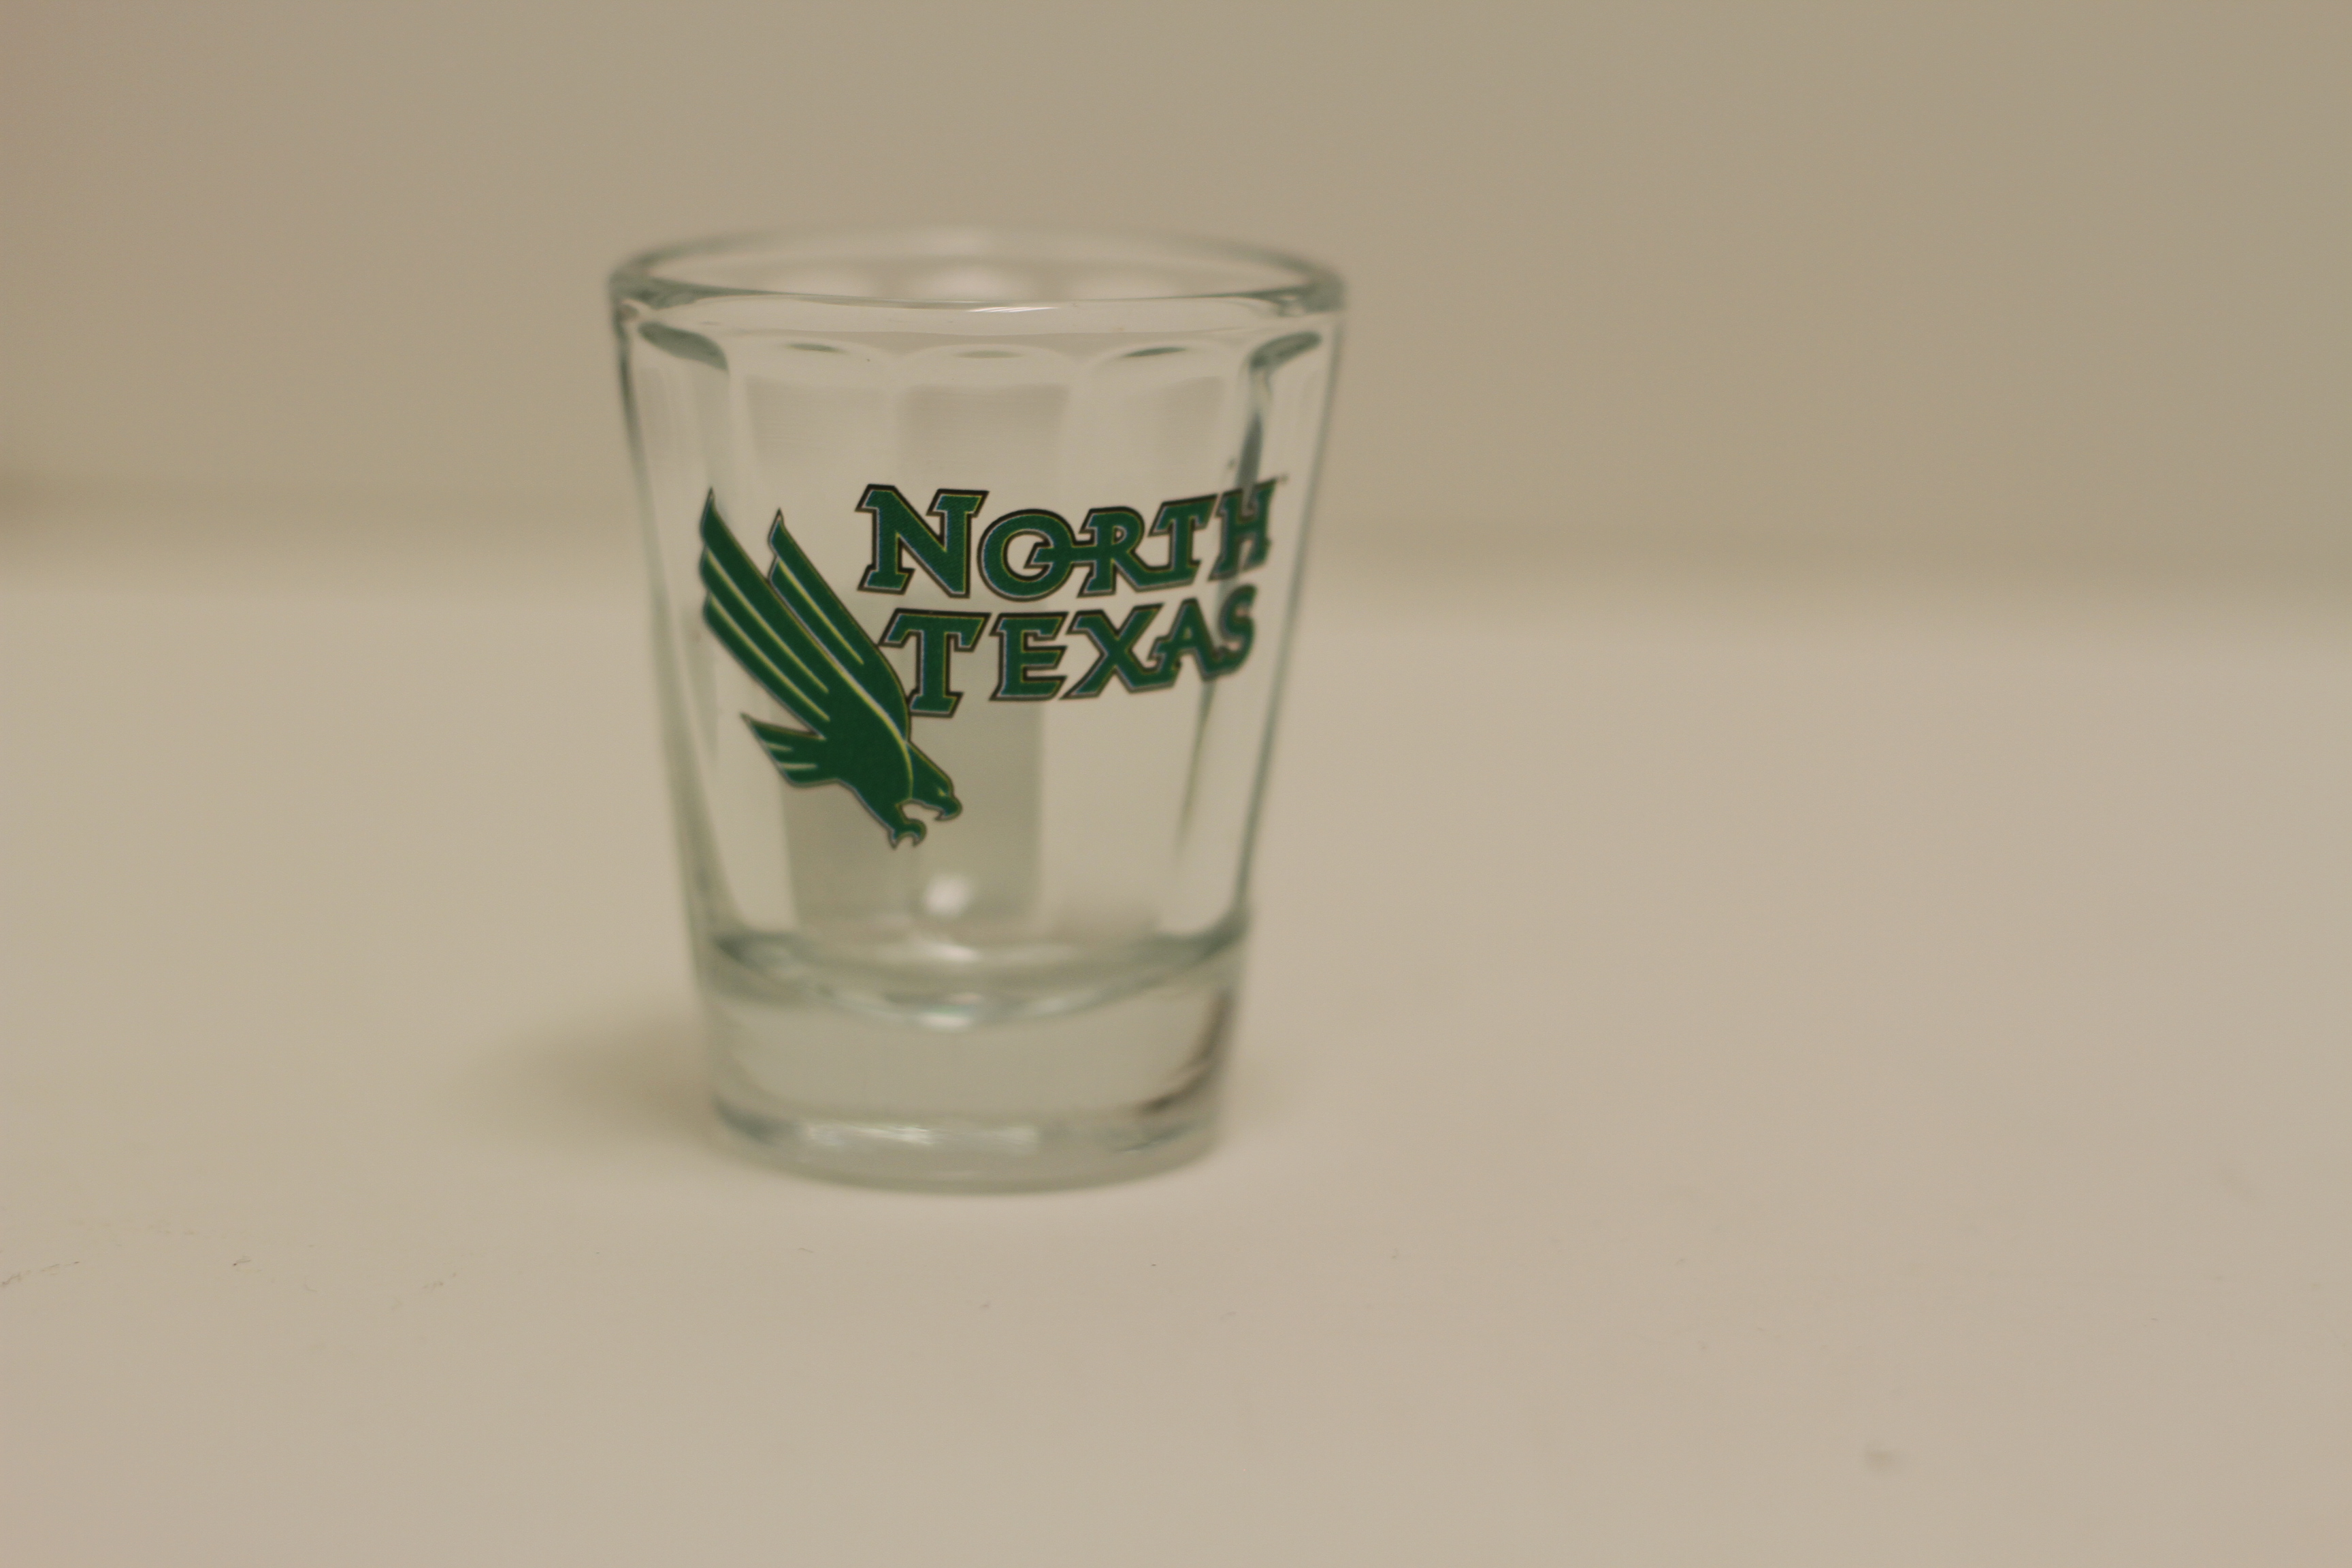 1.5 OZ NORTH TEXAS SHOT GLASS